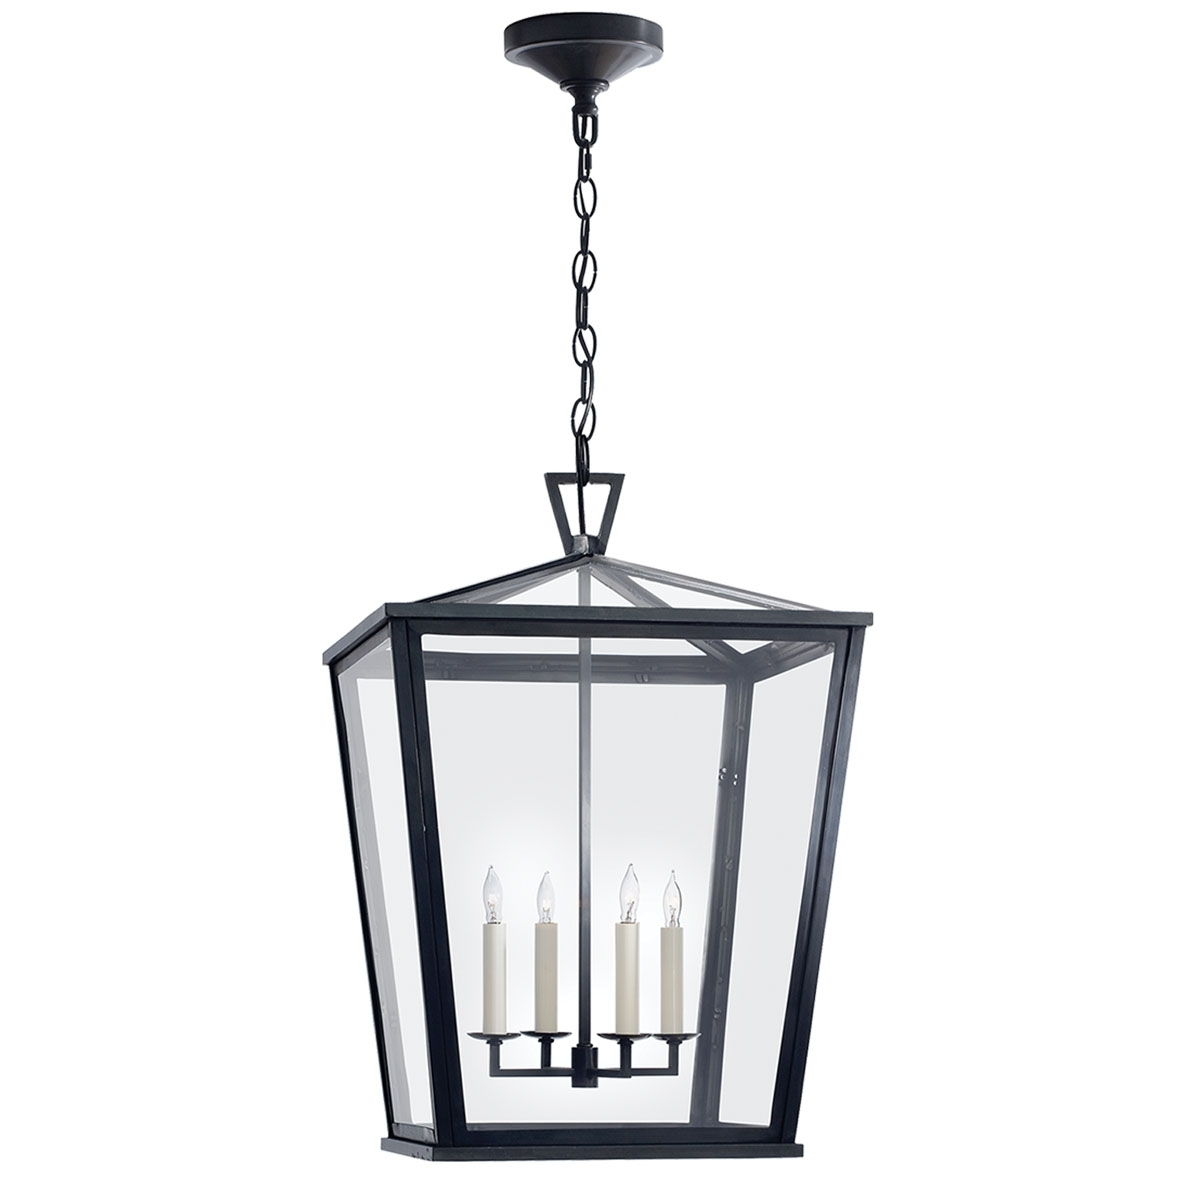 Outdoor Hanging Light In Black Throughout 2018 Visual Comfort Darlana Large Outdoor Hanging Lantern, Outdoor (View 13 of 20)